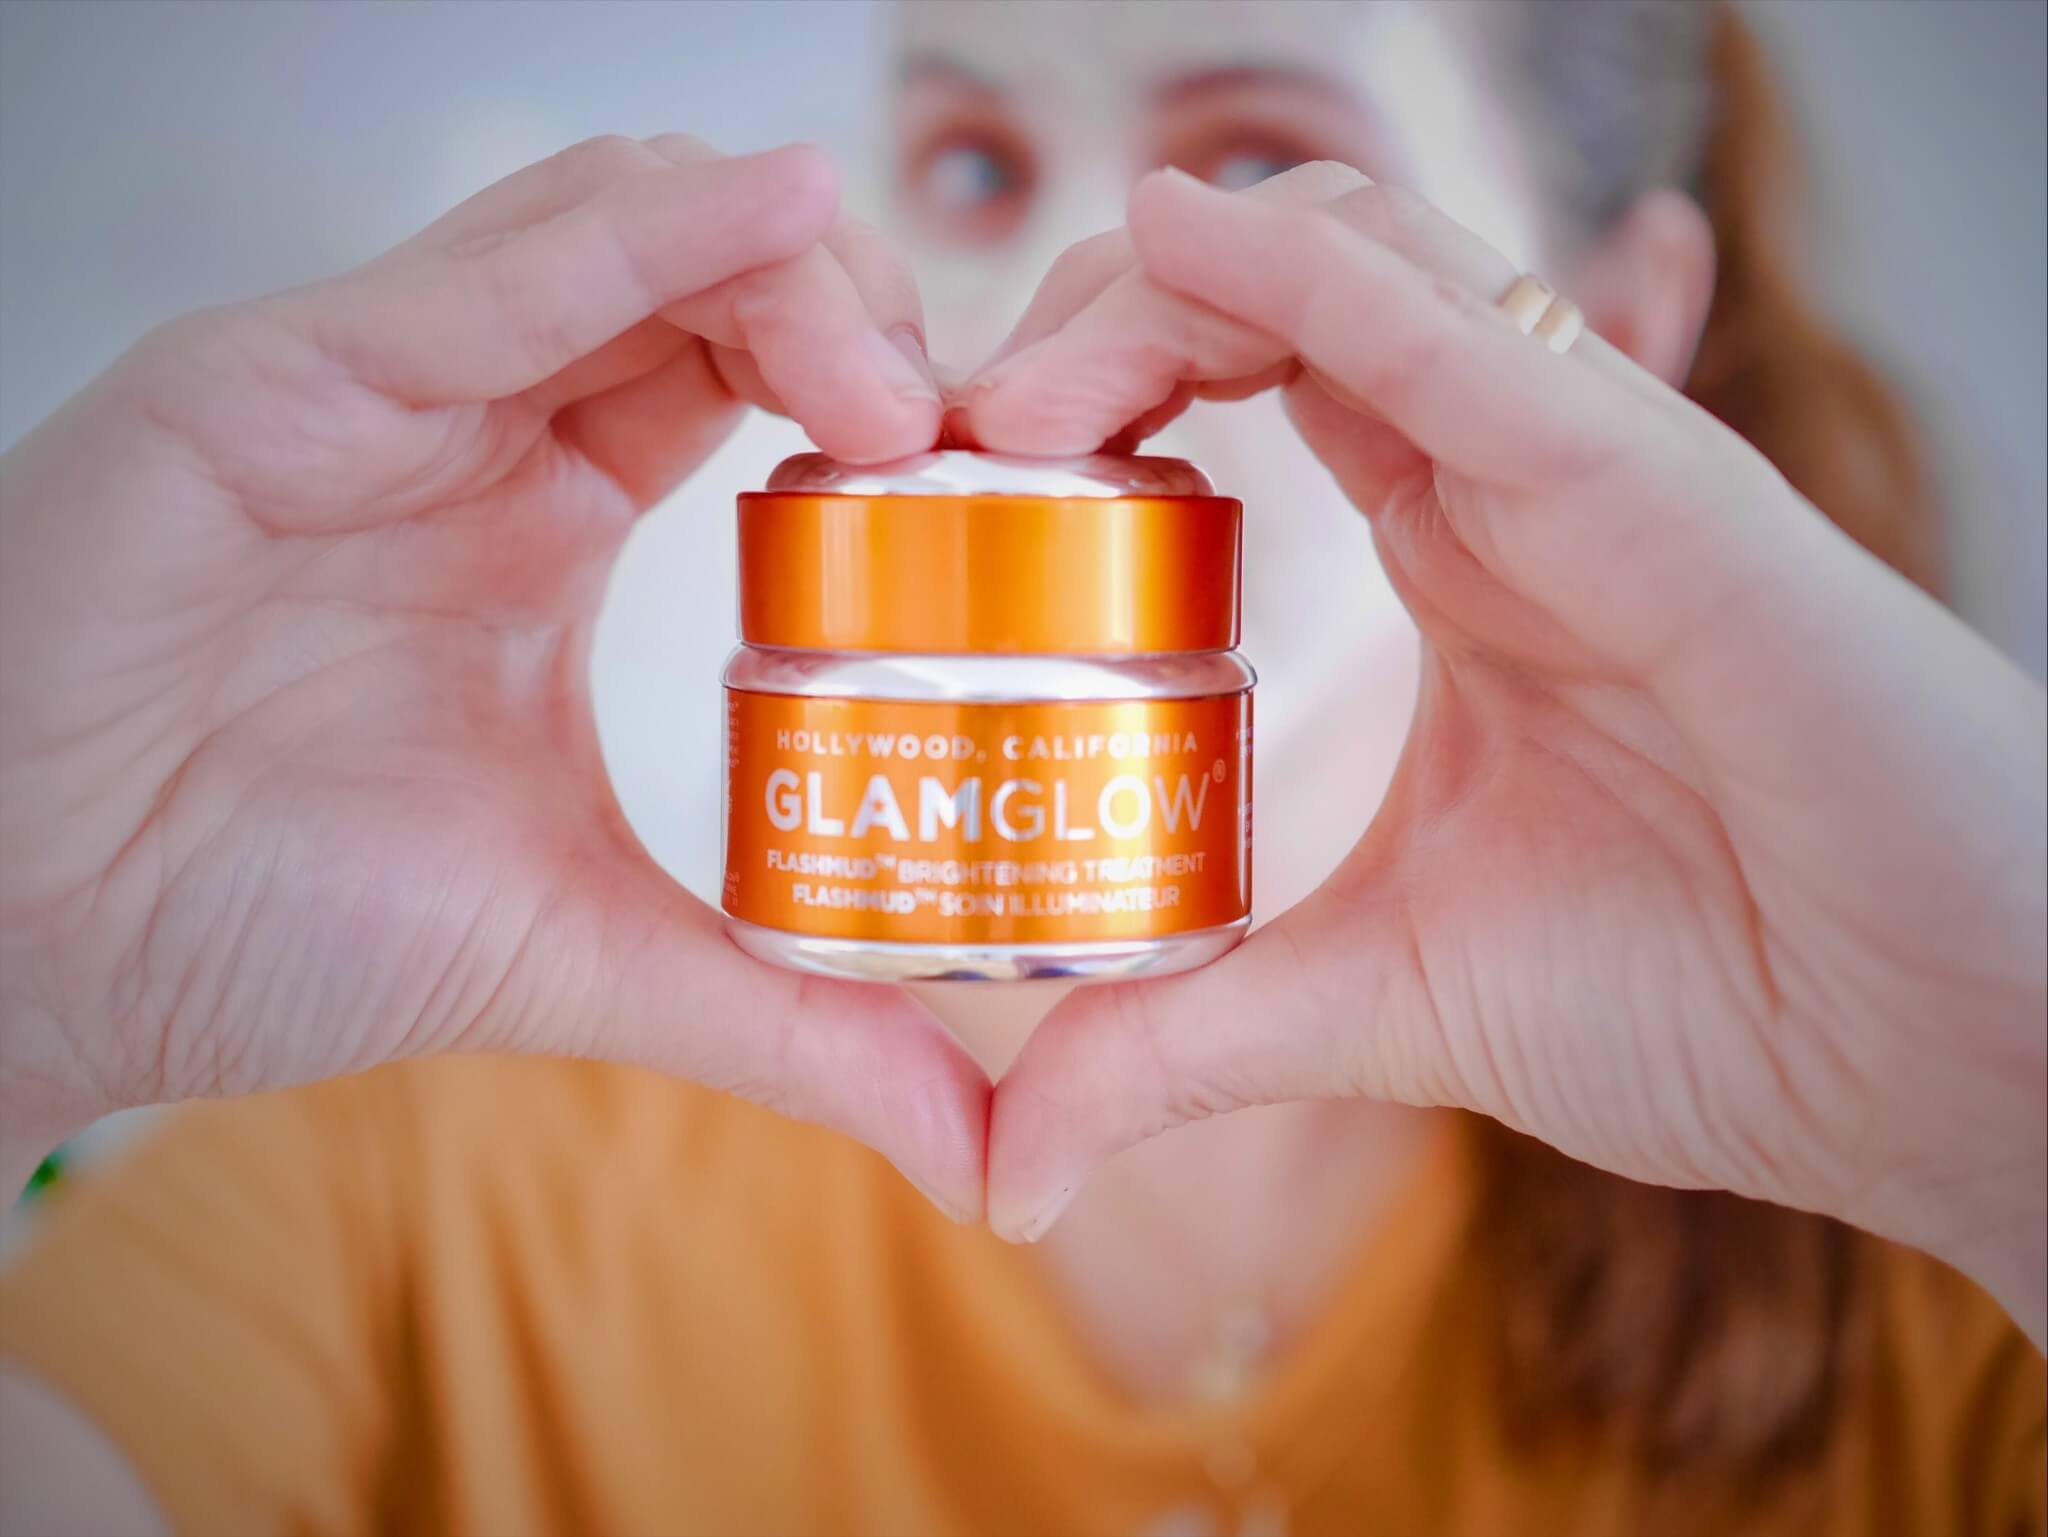 glamgldw brightening mud mask